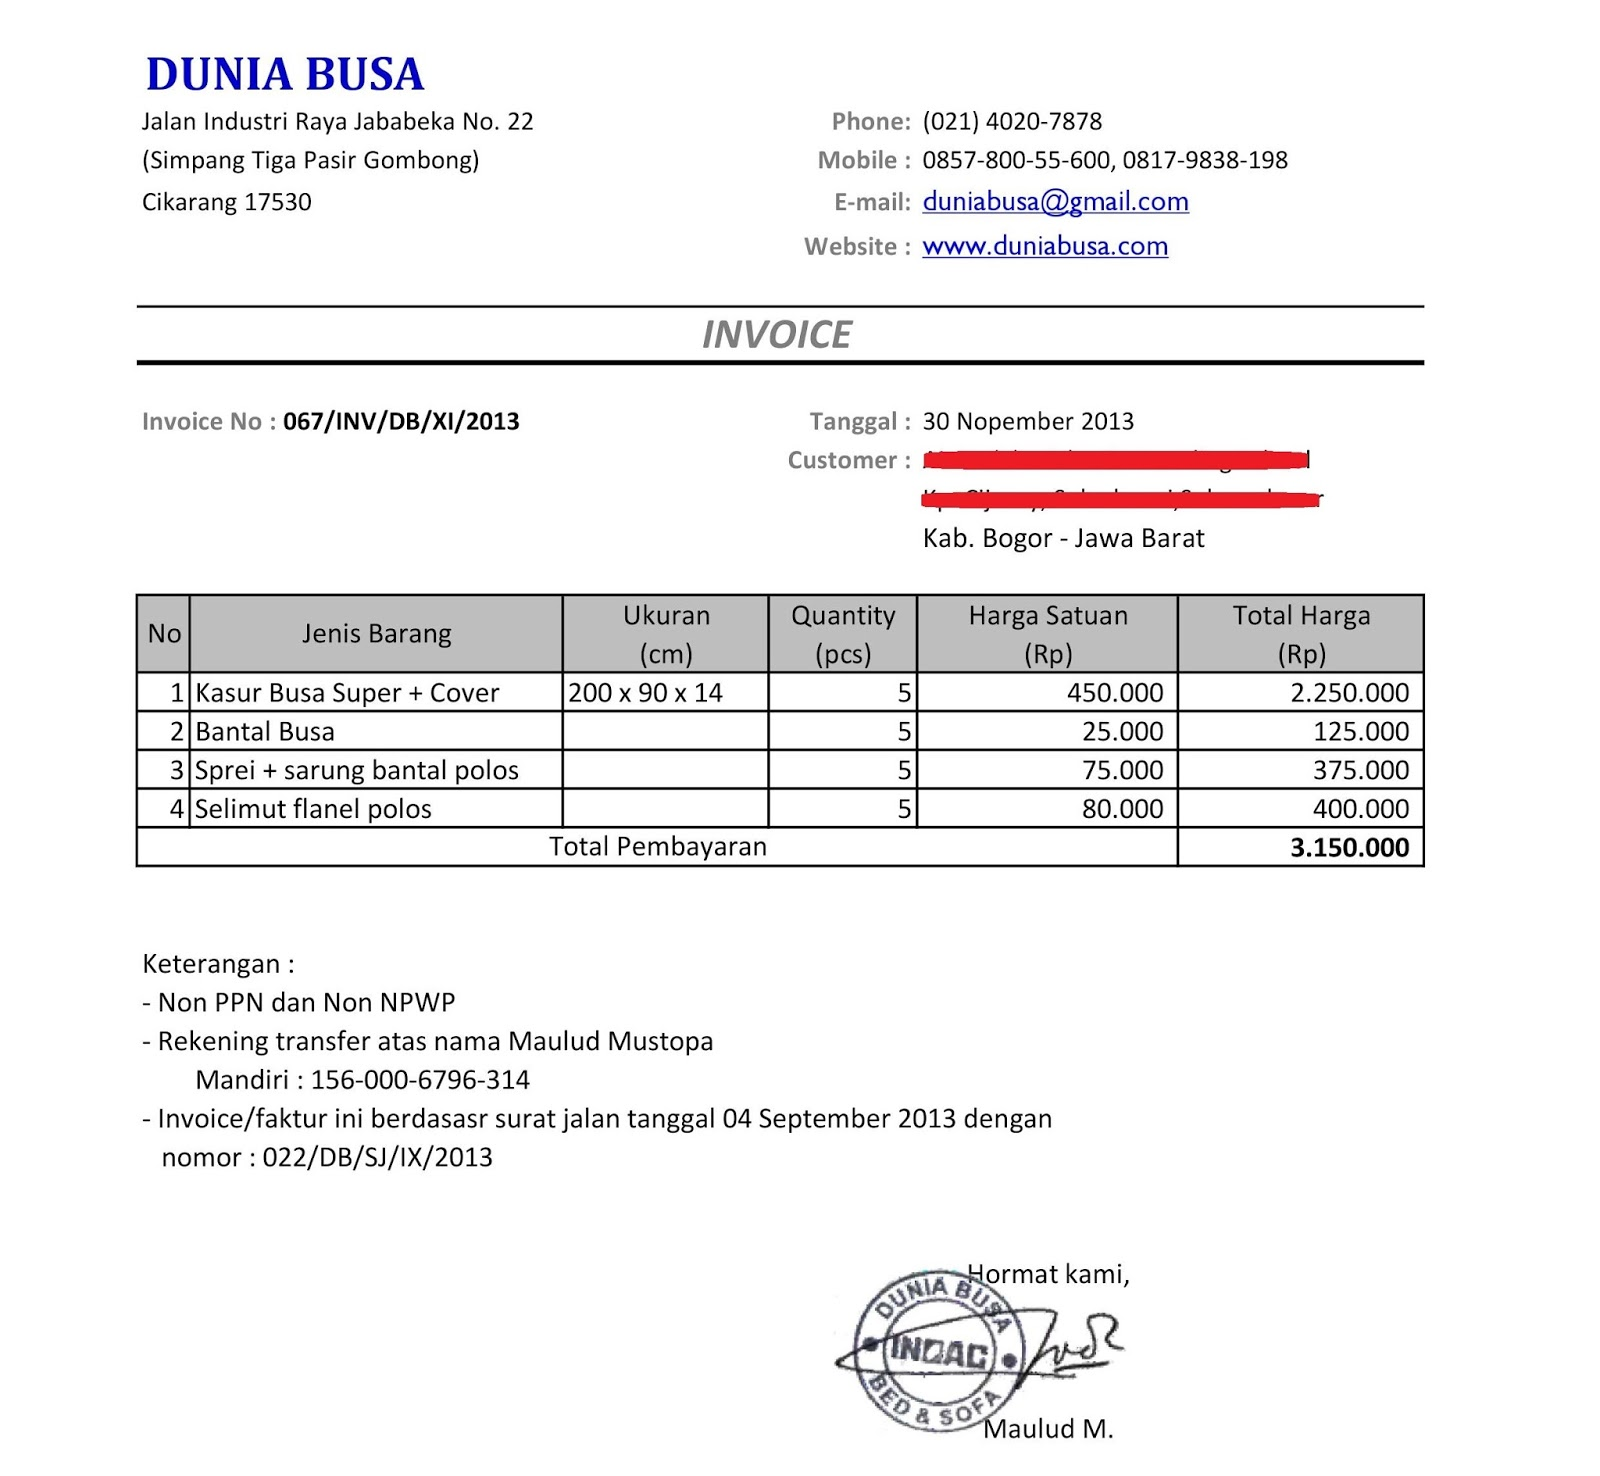 Usdgus  Scenic Free Invoice Online  Create Invoice Online  Invoice Template  With Fair Contoh Format Invoice Atau Surat Tagihan  Brankas Arsip  Free Invoice Online With Endearing Simple Tax Invoice Template Also Invoice And Accounting Software In Addition Vat Invoice Requirements And Microsoft Office Invoice Template Excel As Well As Business Invoice Example Additionally How To Right An Invoice From Sklepco With Usdgus  Fair Free Invoice Online  Create Invoice Online  Invoice Template  With Endearing Contoh Format Invoice Atau Surat Tagihan  Brankas Arsip  Free Invoice Online And Scenic Simple Tax Invoice Template Also Invoice And Accounting Software In Addition Vat Invoice Requirements From Sklepco